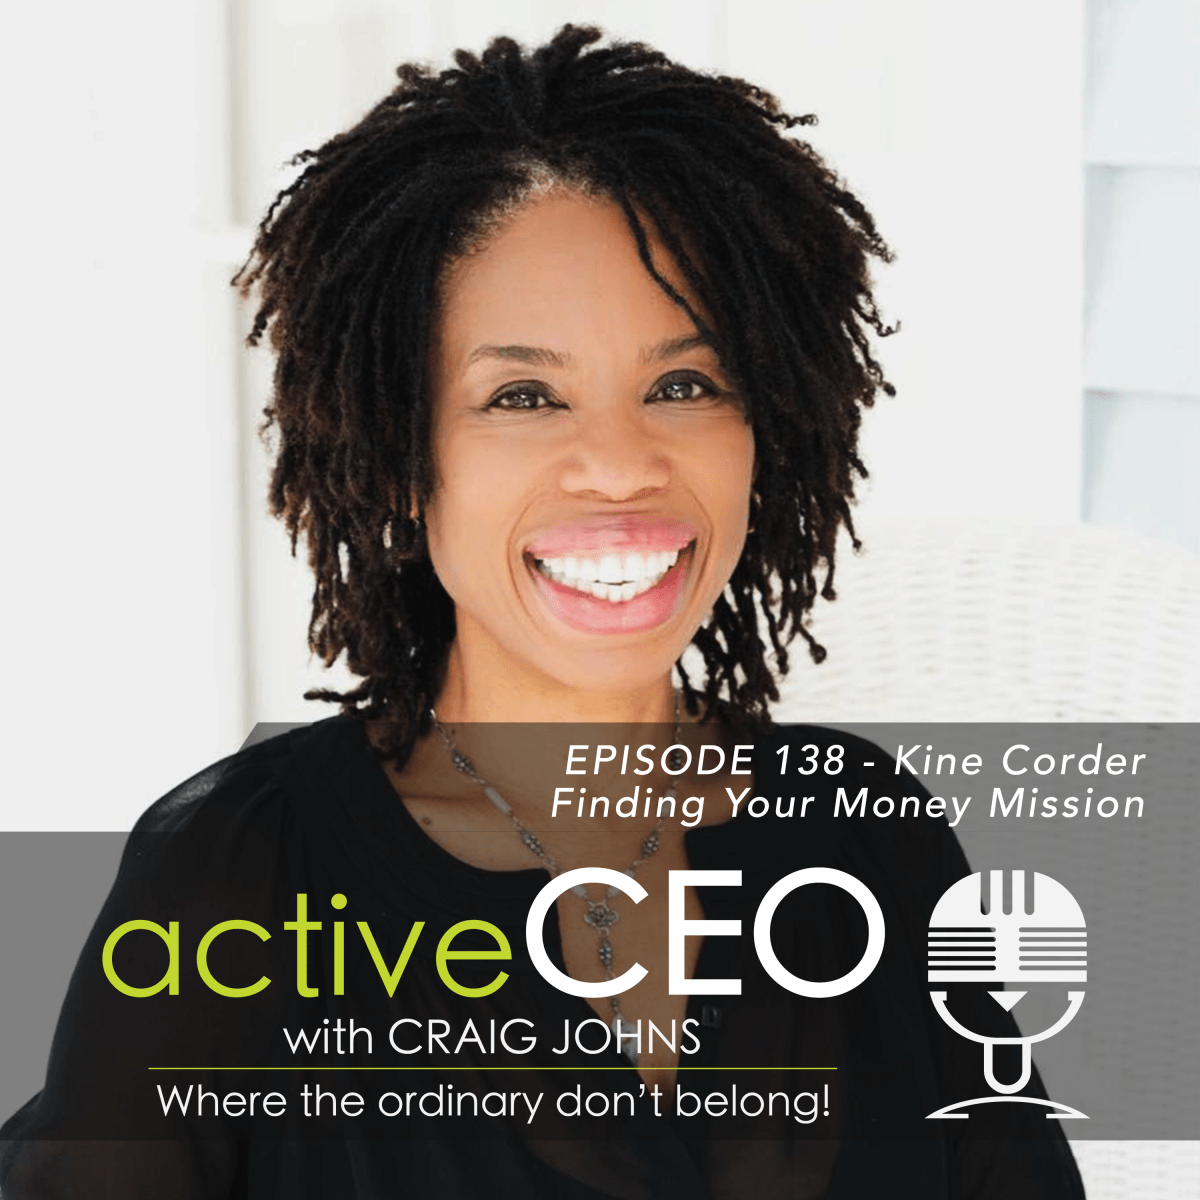 active CEO Podcast #138 Kine Corder Finding Your Money Mission